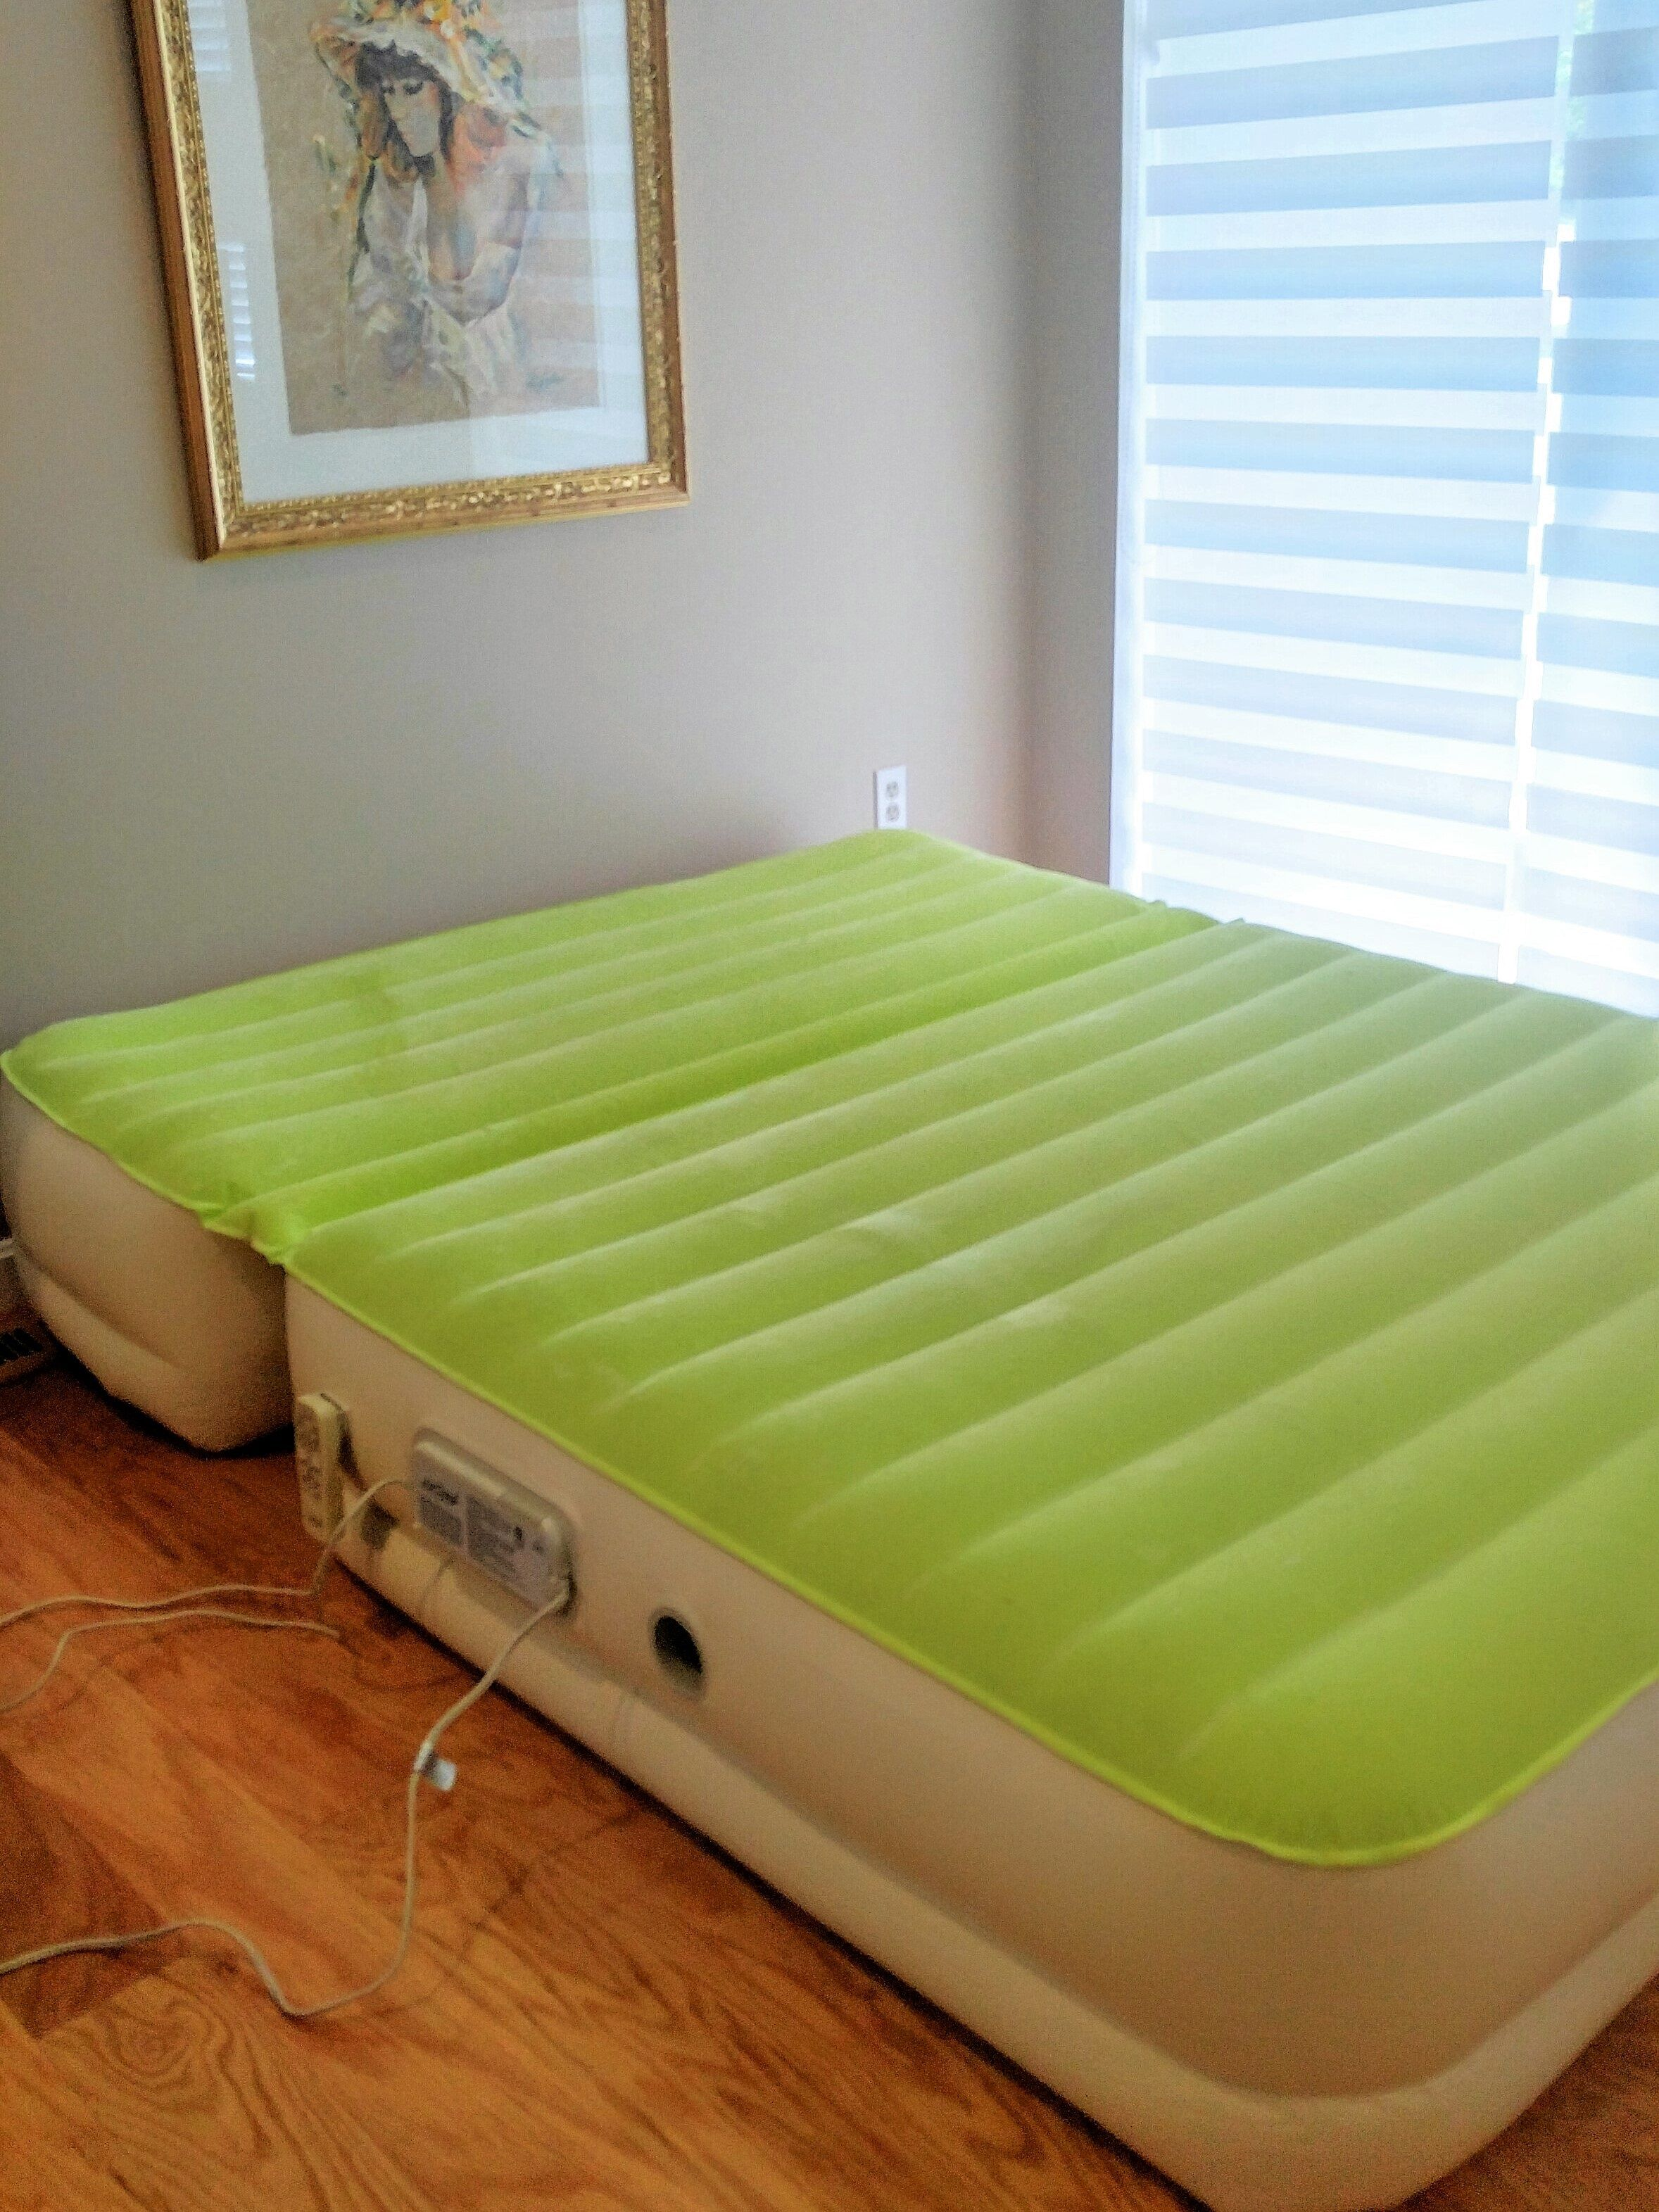 Slumber Matic Queen Size Fully Adjustable Inflatable Air Bed Queen Size Slumber Air Bed Bed Queen Size